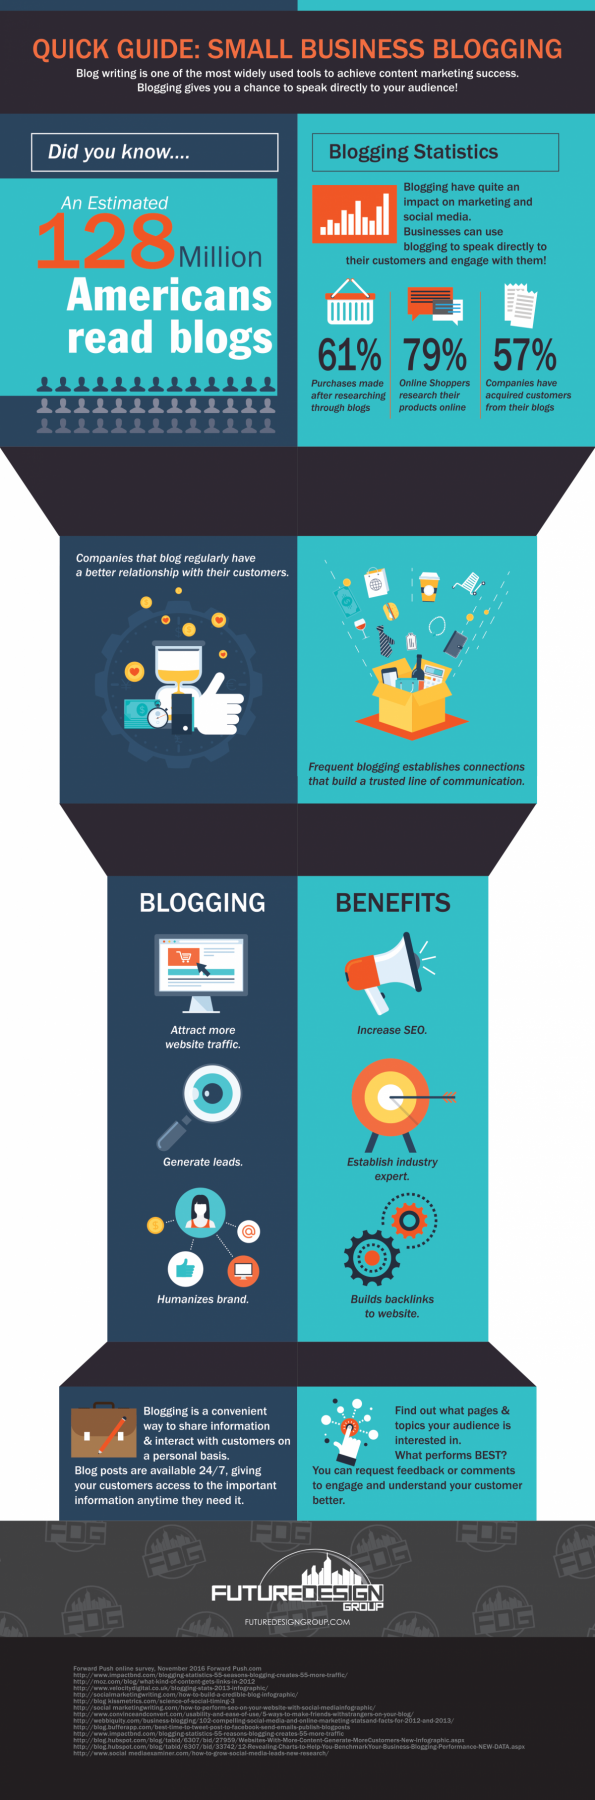 Blogging as a Small Business Infographic